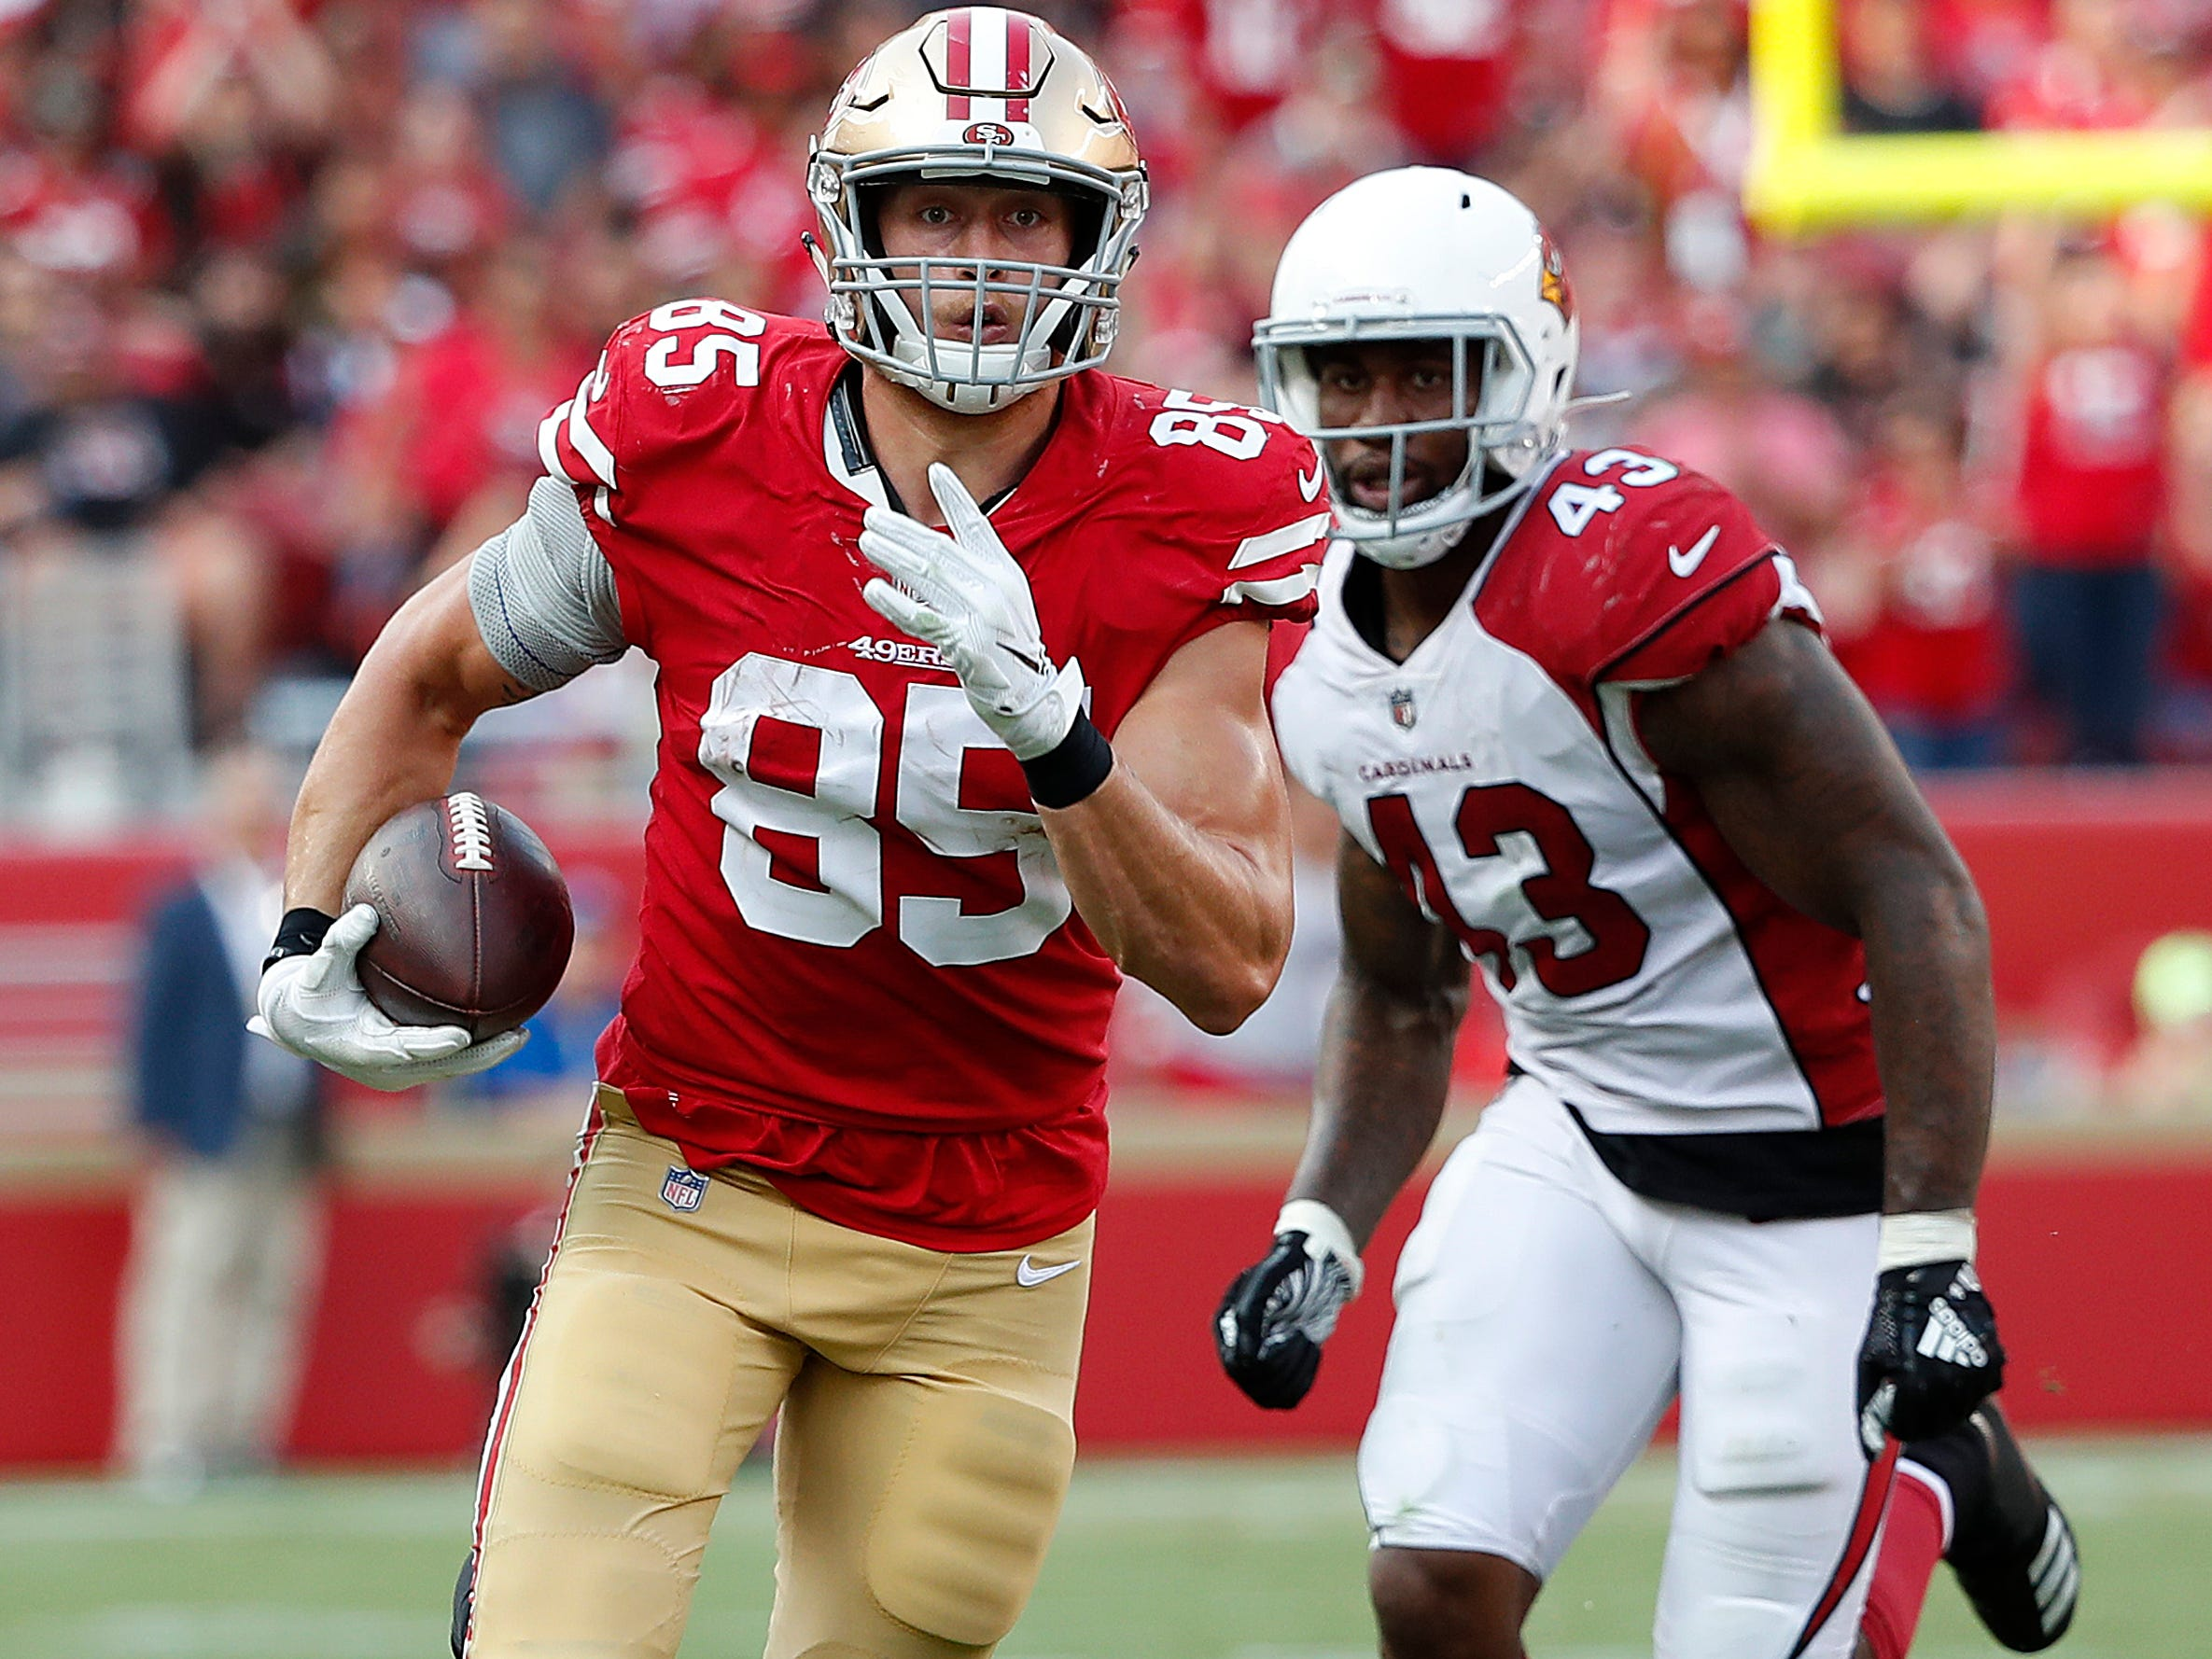 San Francisco 49ers tight end George Kittle (85) runs in front of Arizona Cardinals linebacker Haason Reddick (43) during the second half of an NFL football game in Santa Clara, Calif., Sunday, Oct. 7, 2018.